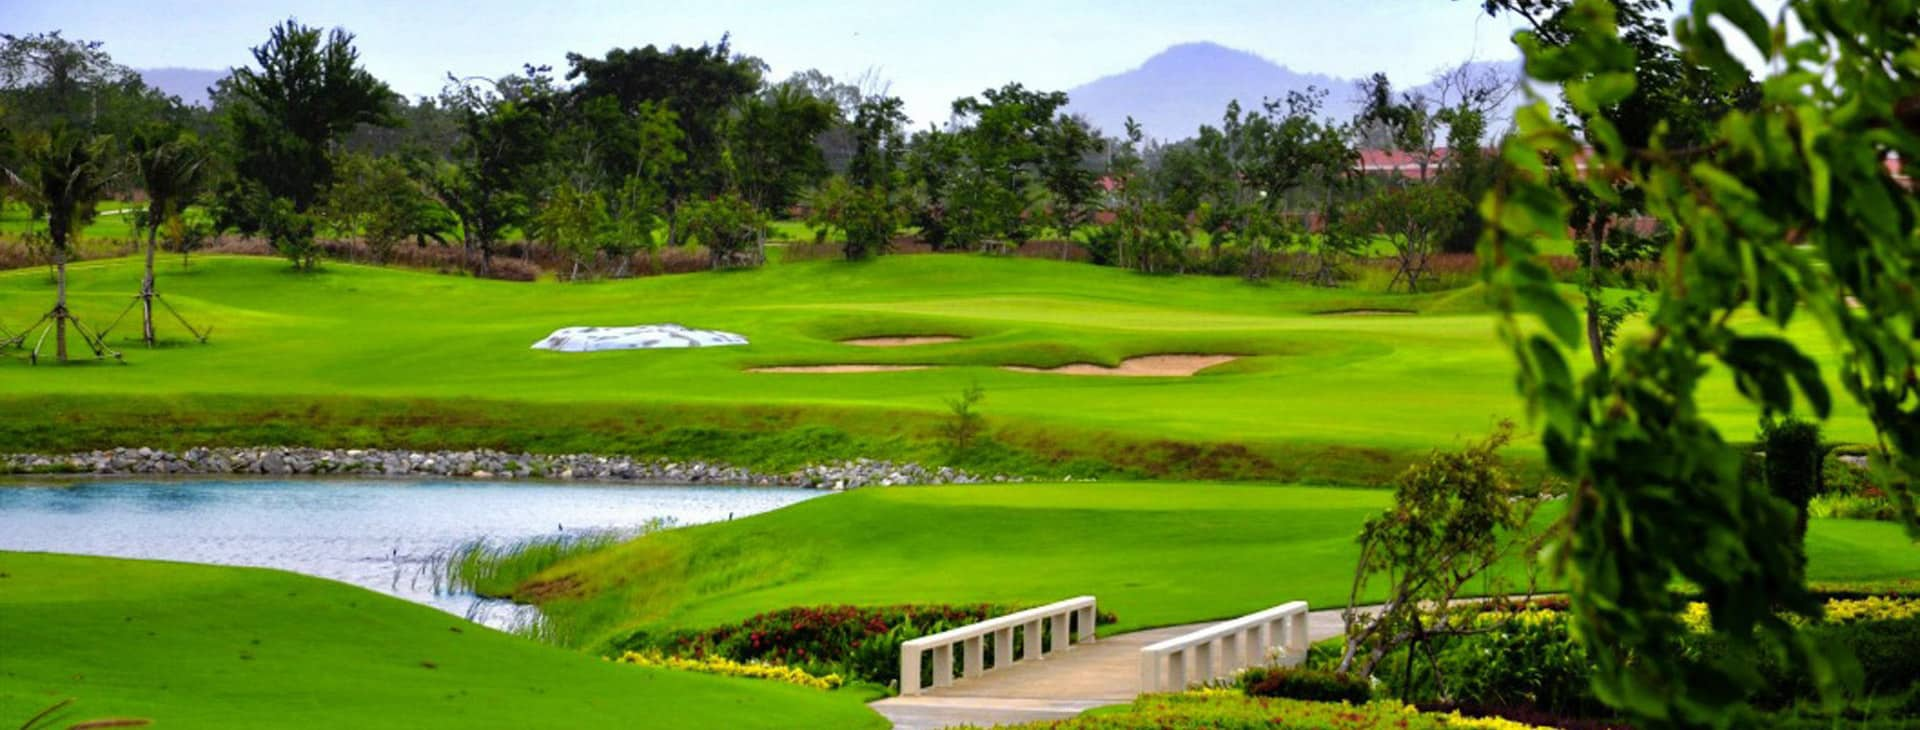 Golf Thailand_Golf Courses_Hua Hin_Sea Pines Golf Course